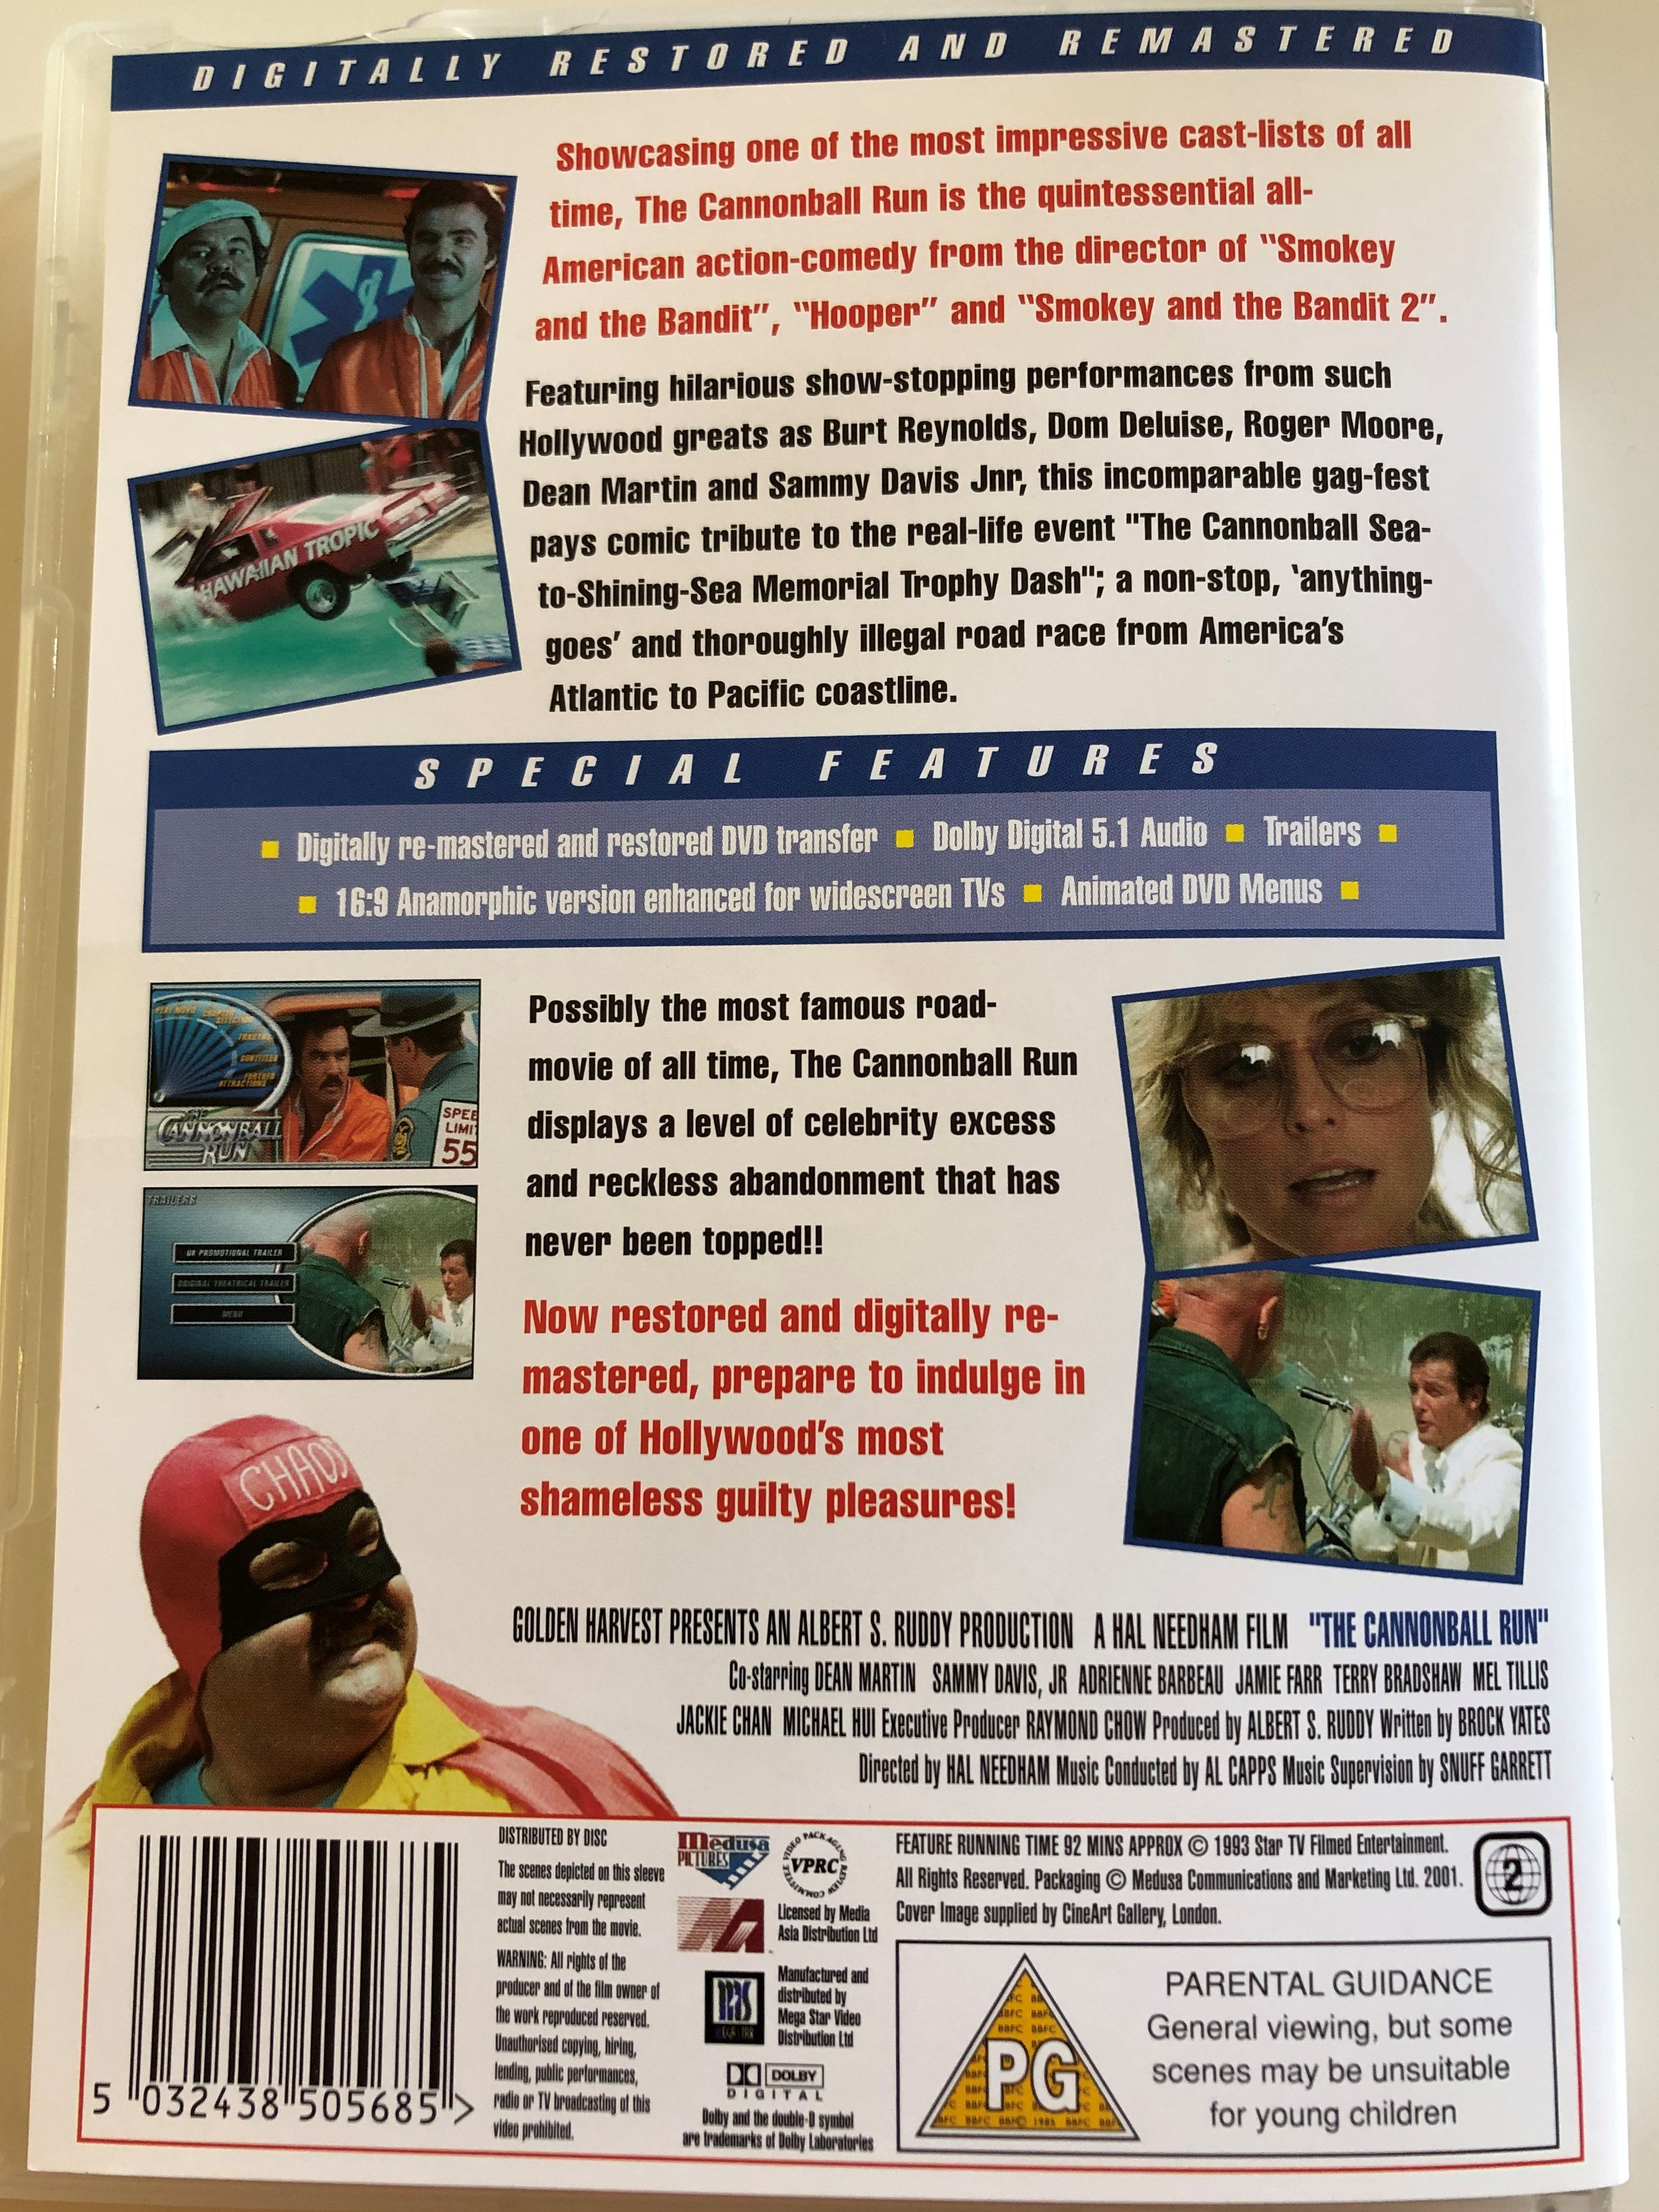 the-cannonball-run-dvd-1981-directed-by-hal-needham-2.jpg